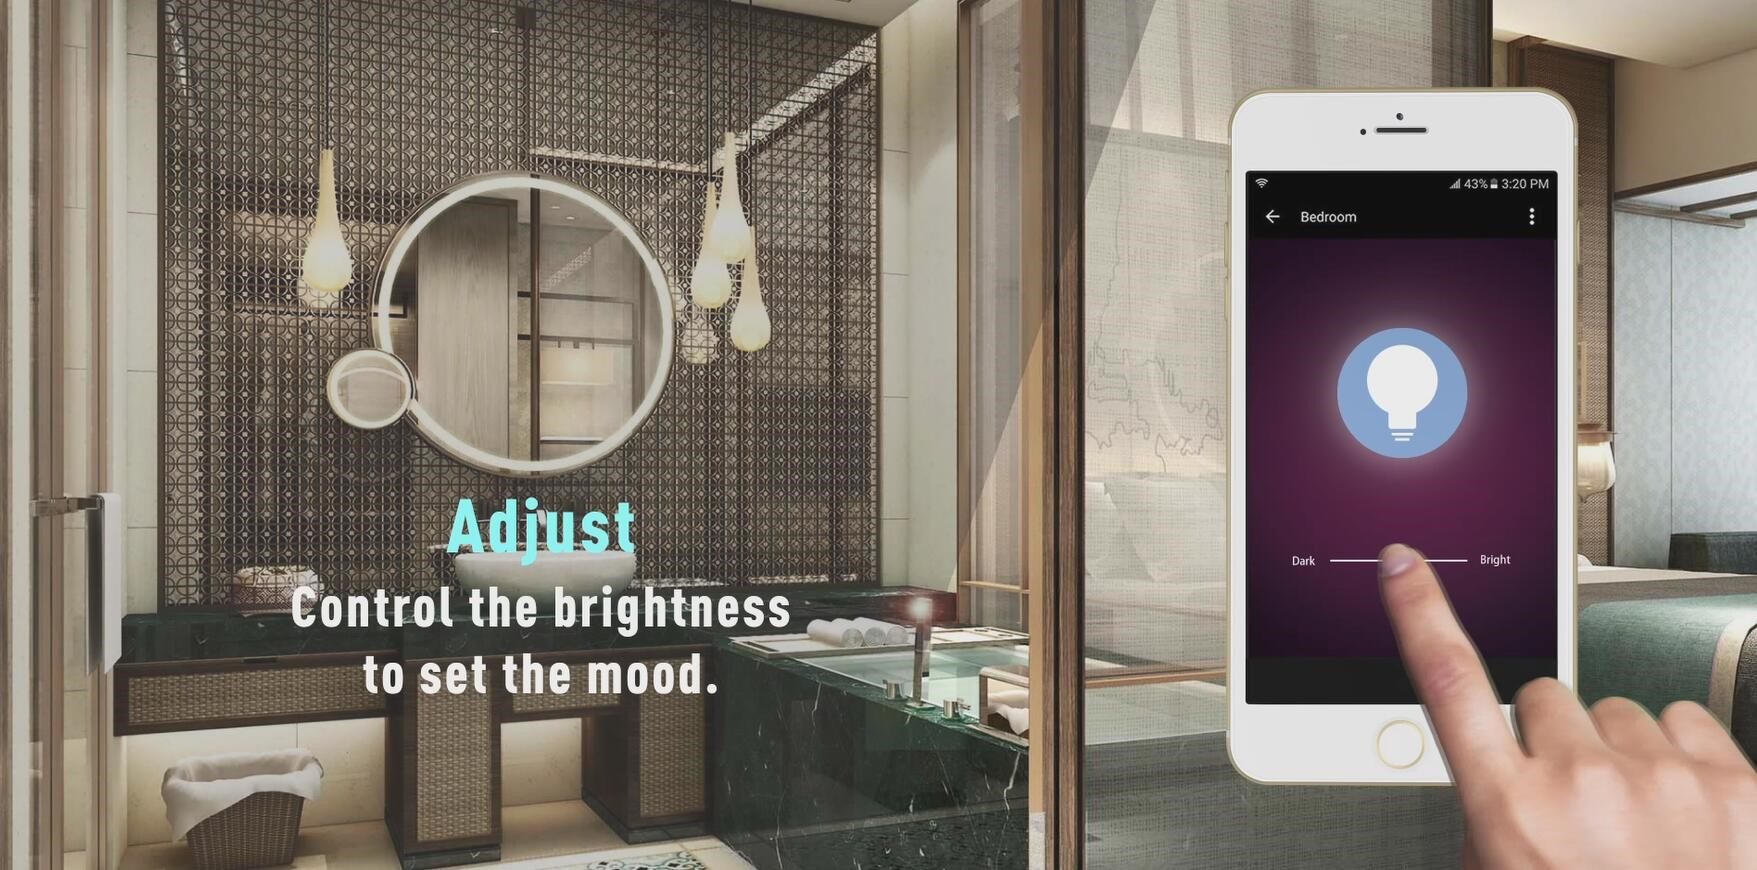 7-A70 Smart LED Light Bulb-Dim Brightness 10 to 100